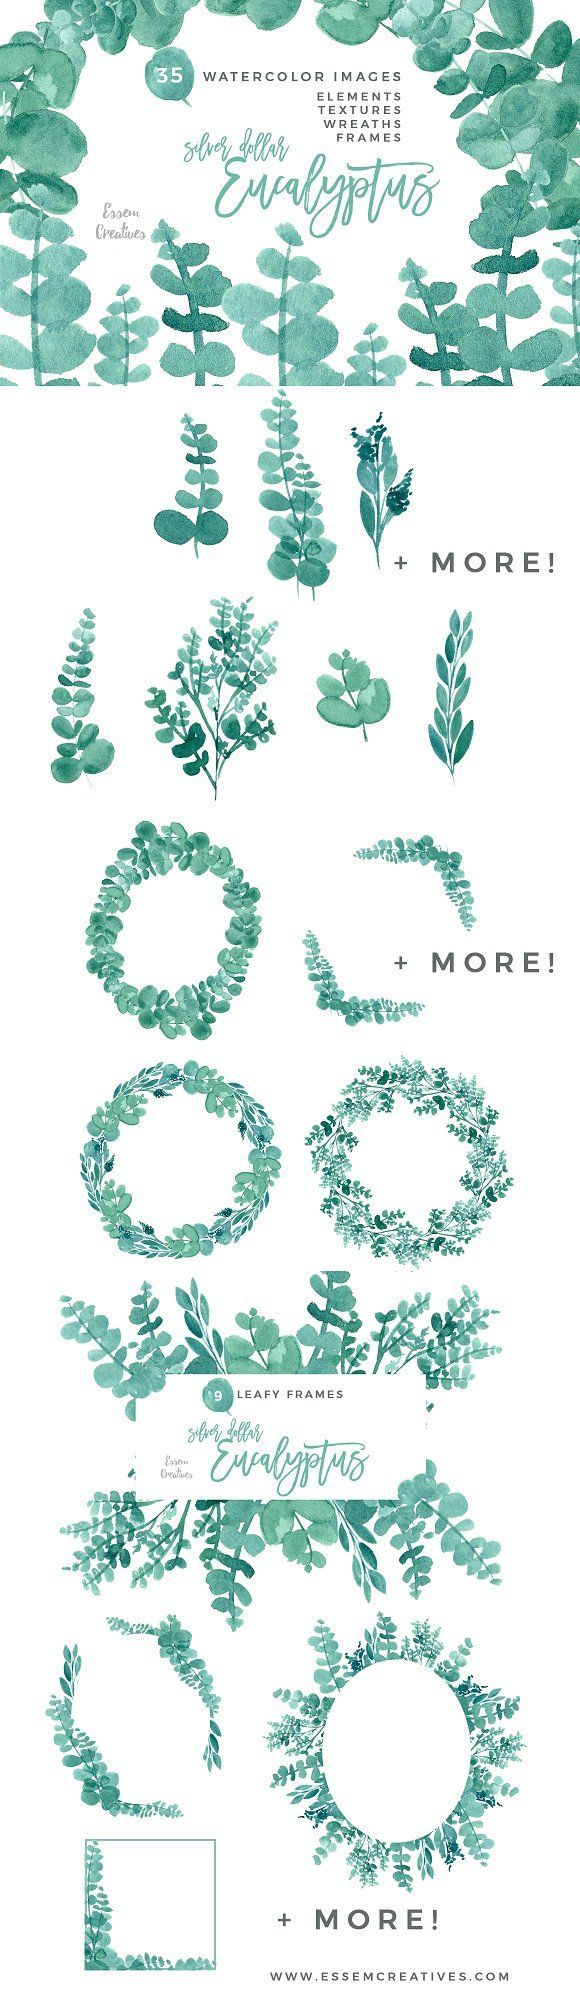 Eucalyptus Clipart Watercolor Leaves by Essem Creatives on @creativemarket - Eucalyptus Clipart, Watercolor Leaves Clip art, Wreaths, Frames, Greenery clipart, Rustic Wedding Invitation, Mint, Green, Stock Illustrations, Stock Graphics, Stock Eucalyptus